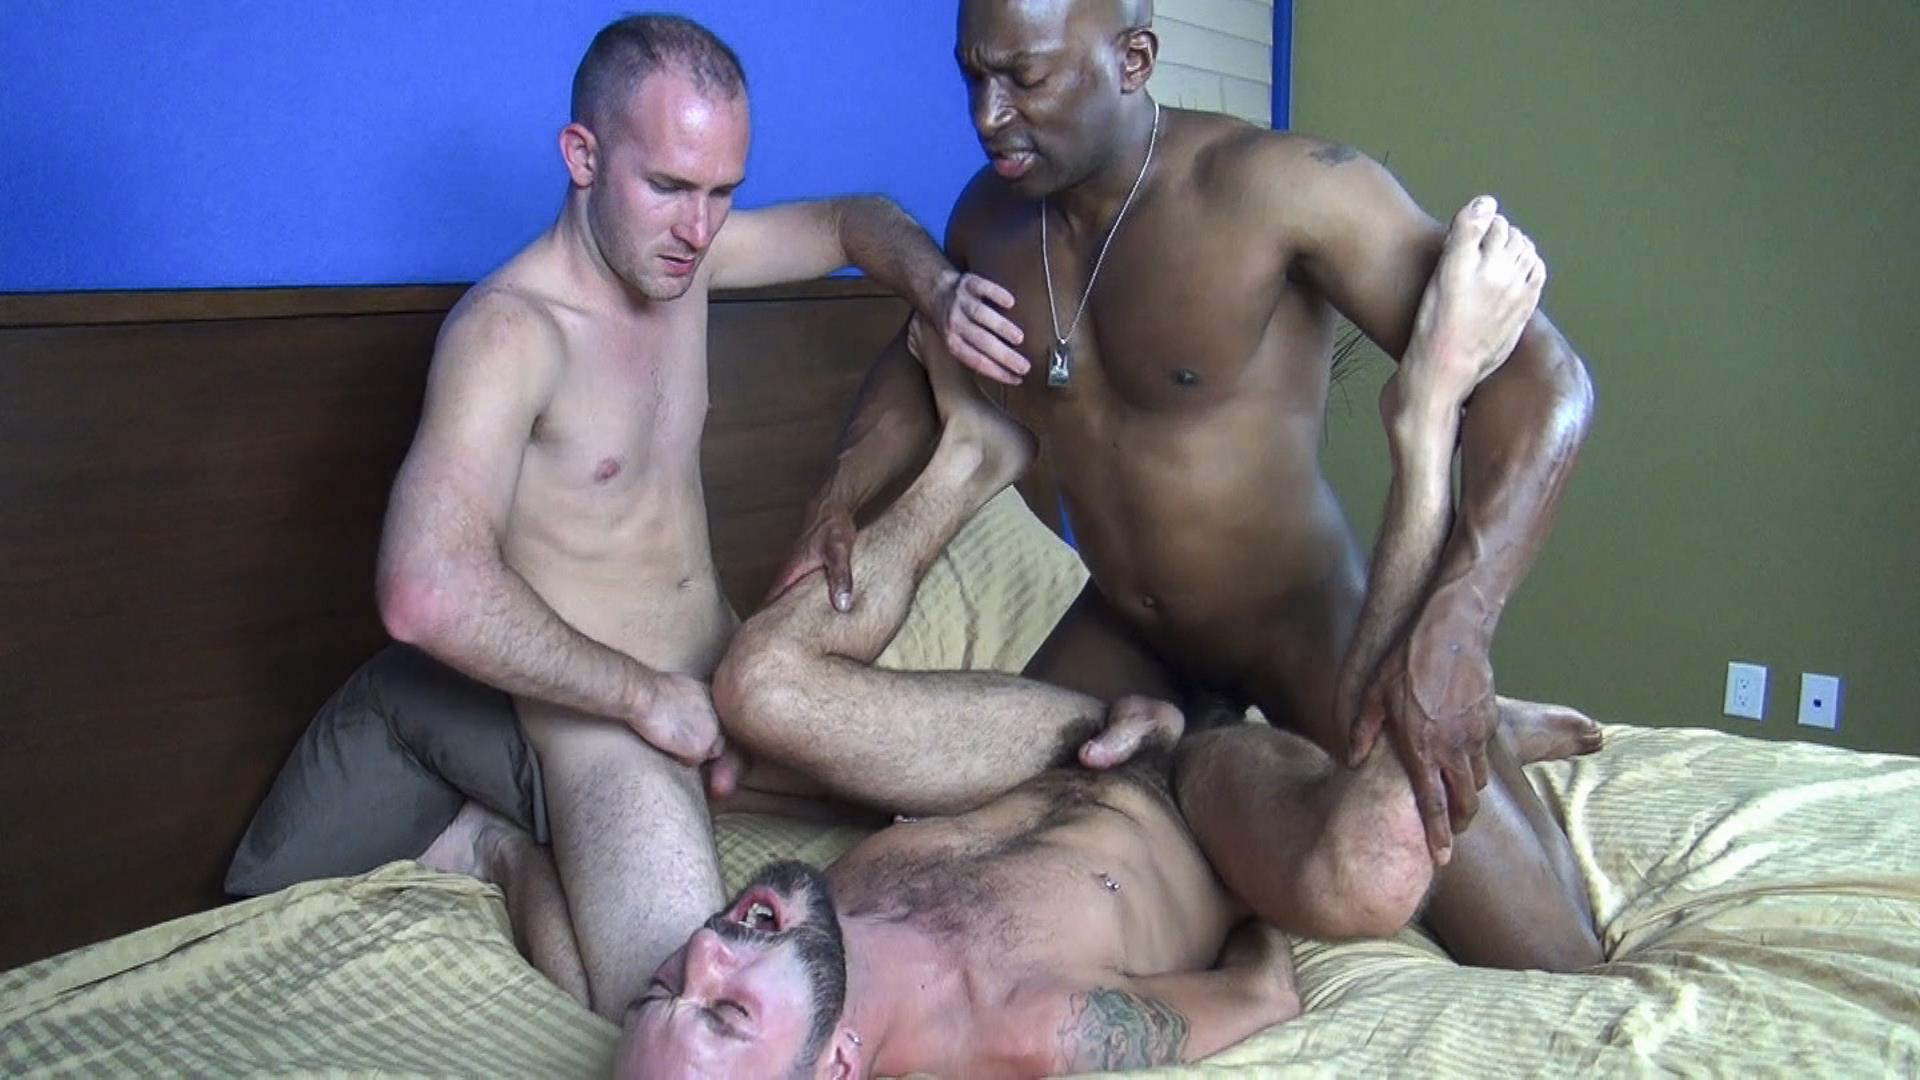 Raw Fuck Club Ethan Palmer and Champ Robinson and Trit Tyler Bareback Interrical Amateur Gay Porn 04 Champ Robinson Shares His Big Black Dick With 2 White Guys